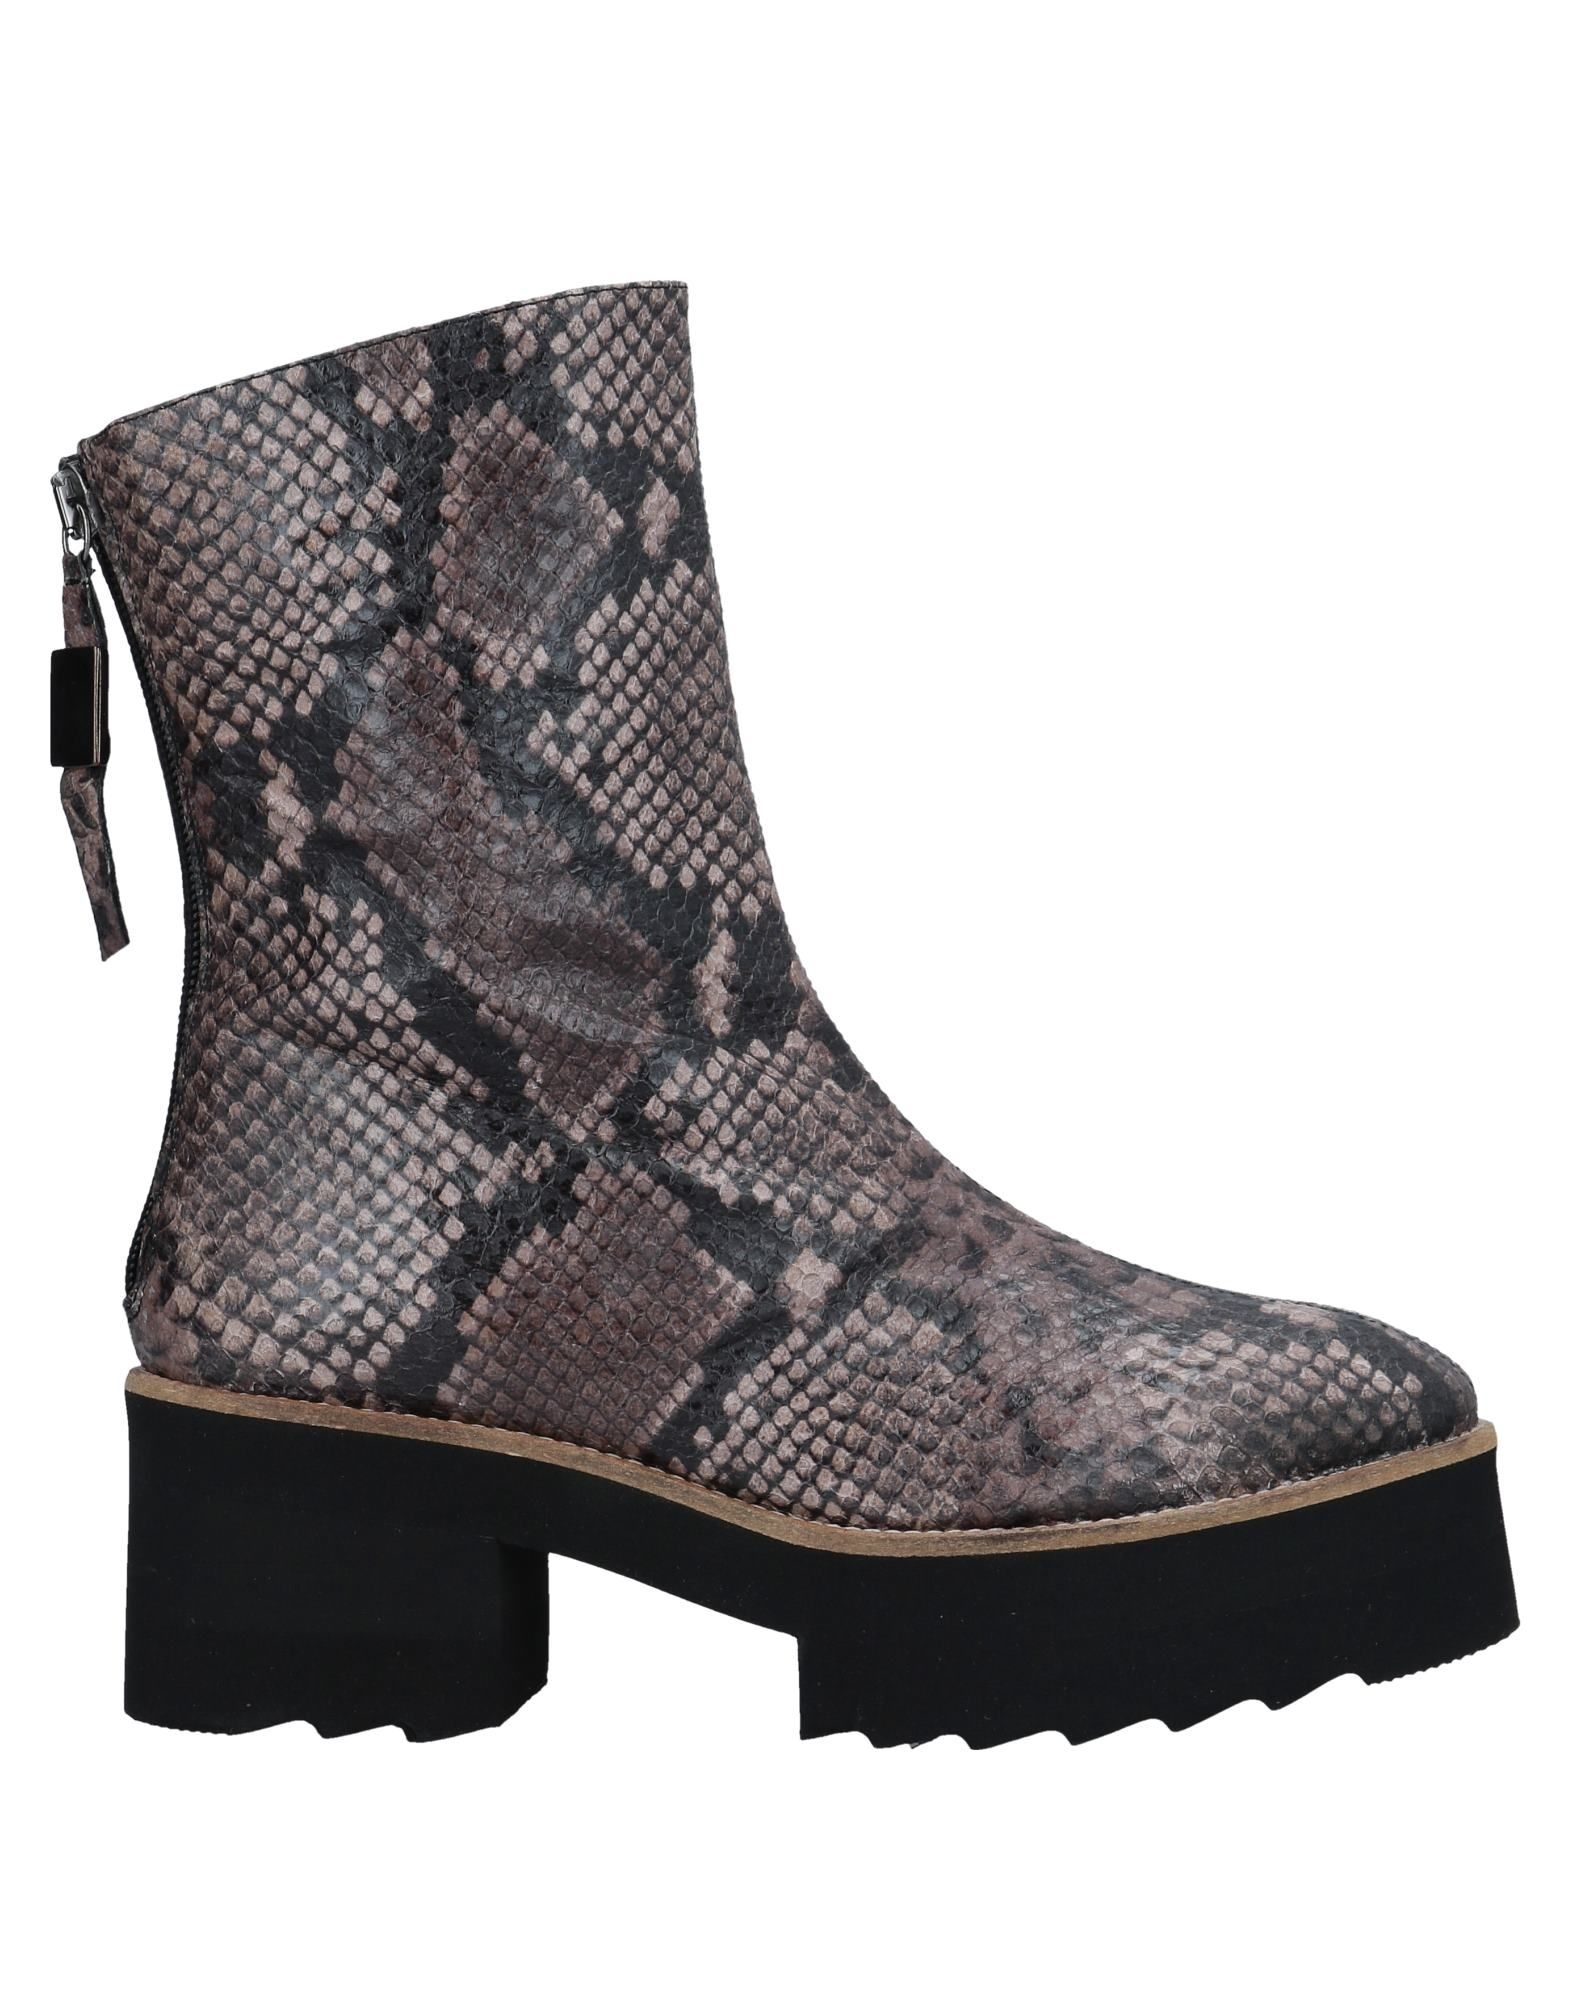 Anaki Ankle Ankle Boot - Women Anaki Ankle Ankle Boots online on  United Kingdom - 11547094UA 426828